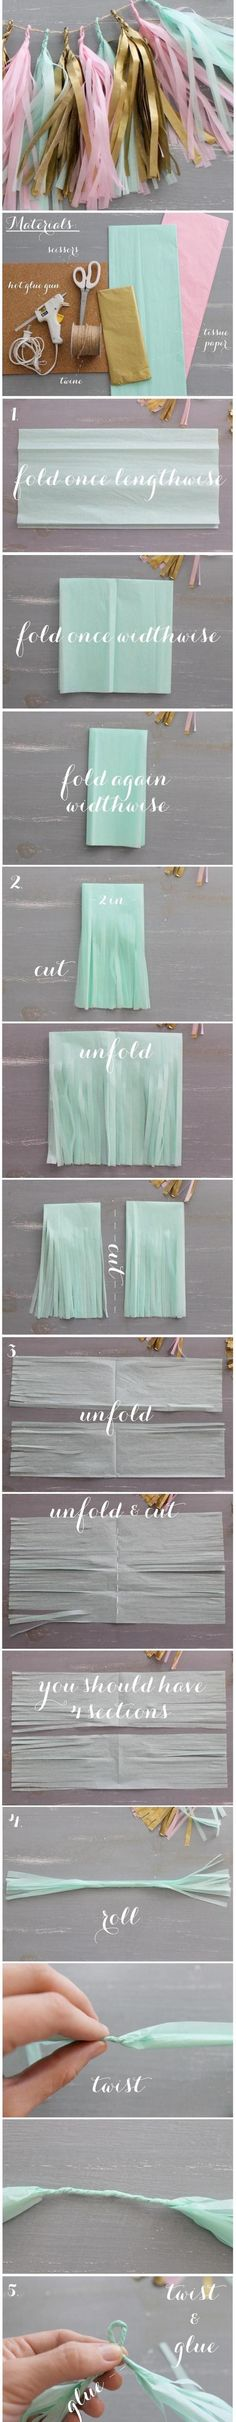 10 DIY Party Crafts DIY Tassel Garland in pretty pastels. Perfect for any celebration from baby showers to first birthday parties.DIY Tassel Garland in pretty pastels. Perfect for any celebration from baby showers to first birthday parties. Unicorn Birthday Parties, First Birthday Parties, Girl Birthday, First Birthdays, Birthday Diy, Birthday Banners, Birthday Celebration, 1st Birthday Girl Party Ideas, Birthday Wall